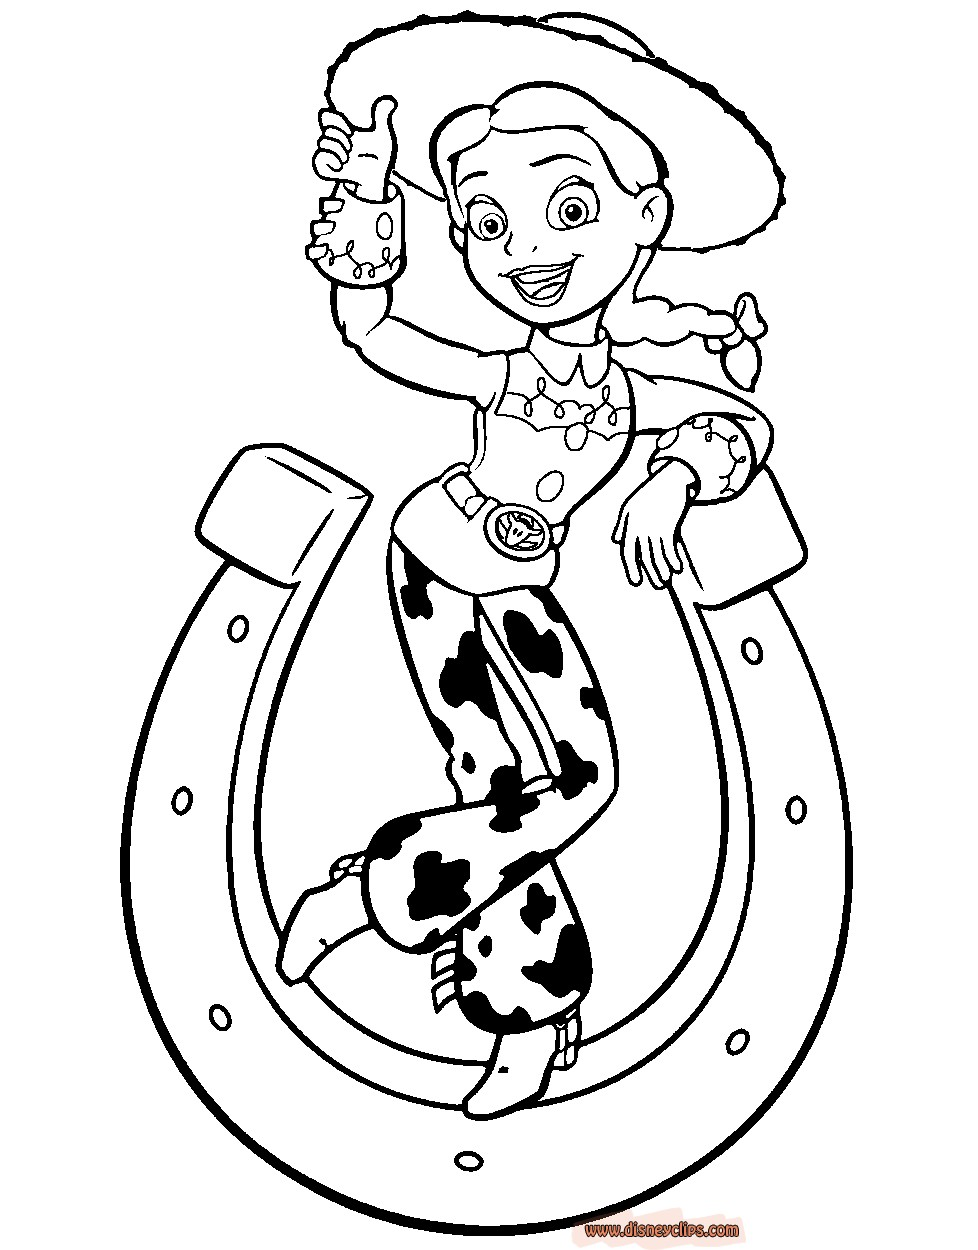 Jessie Toy Story Drawing at GetDrawings.com | Free for personal use